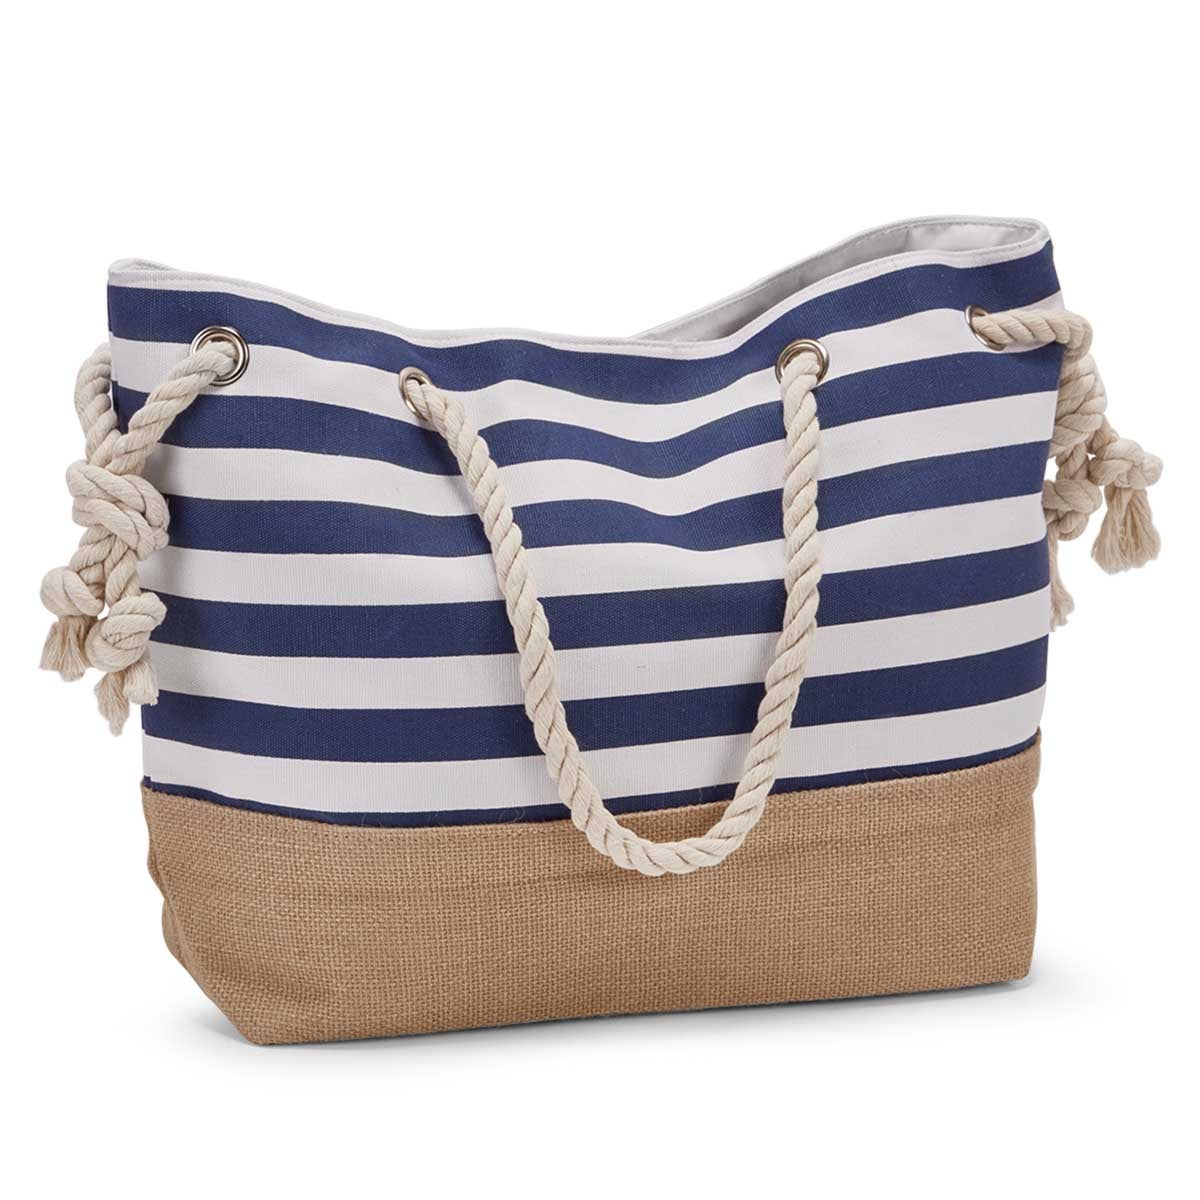 Women's navy & white stripe canvas tote bag